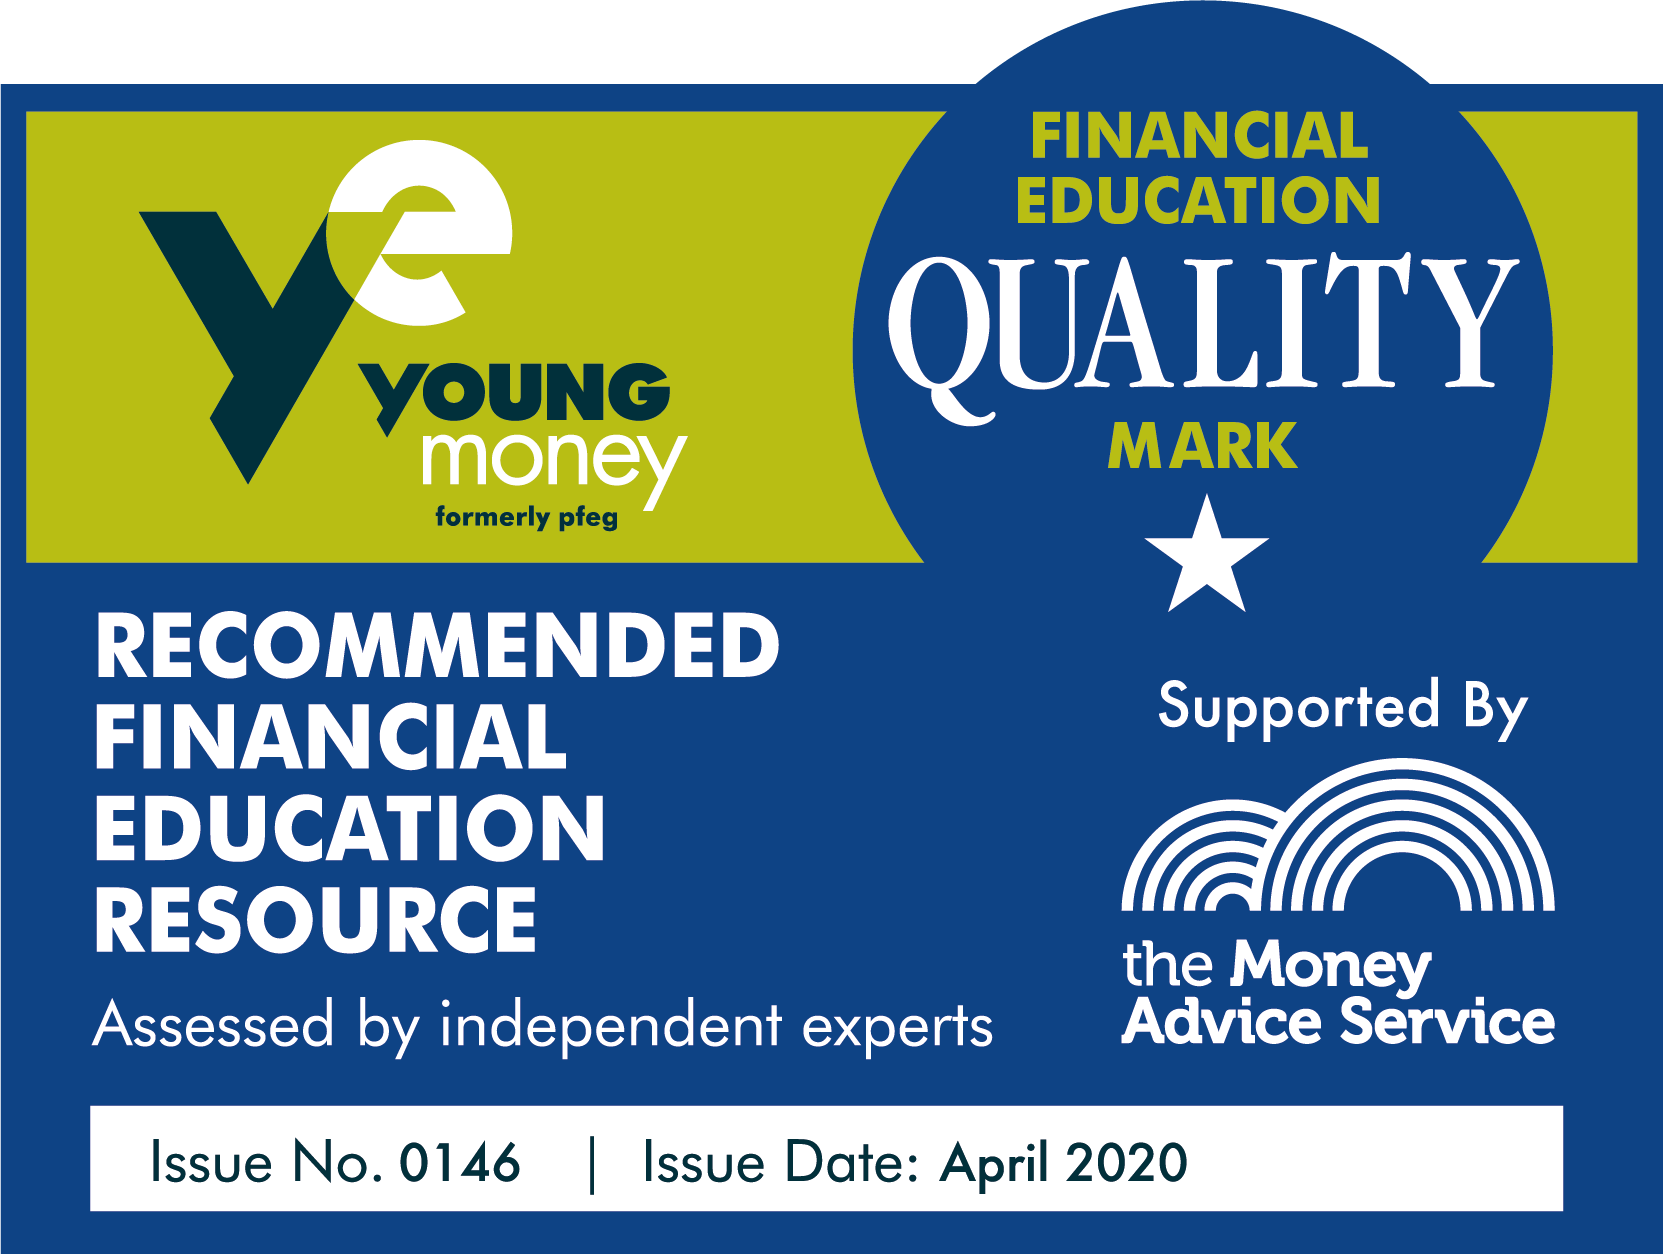 Young money has given us their financial education quality mark and Money and Me is a recommended financial education resource